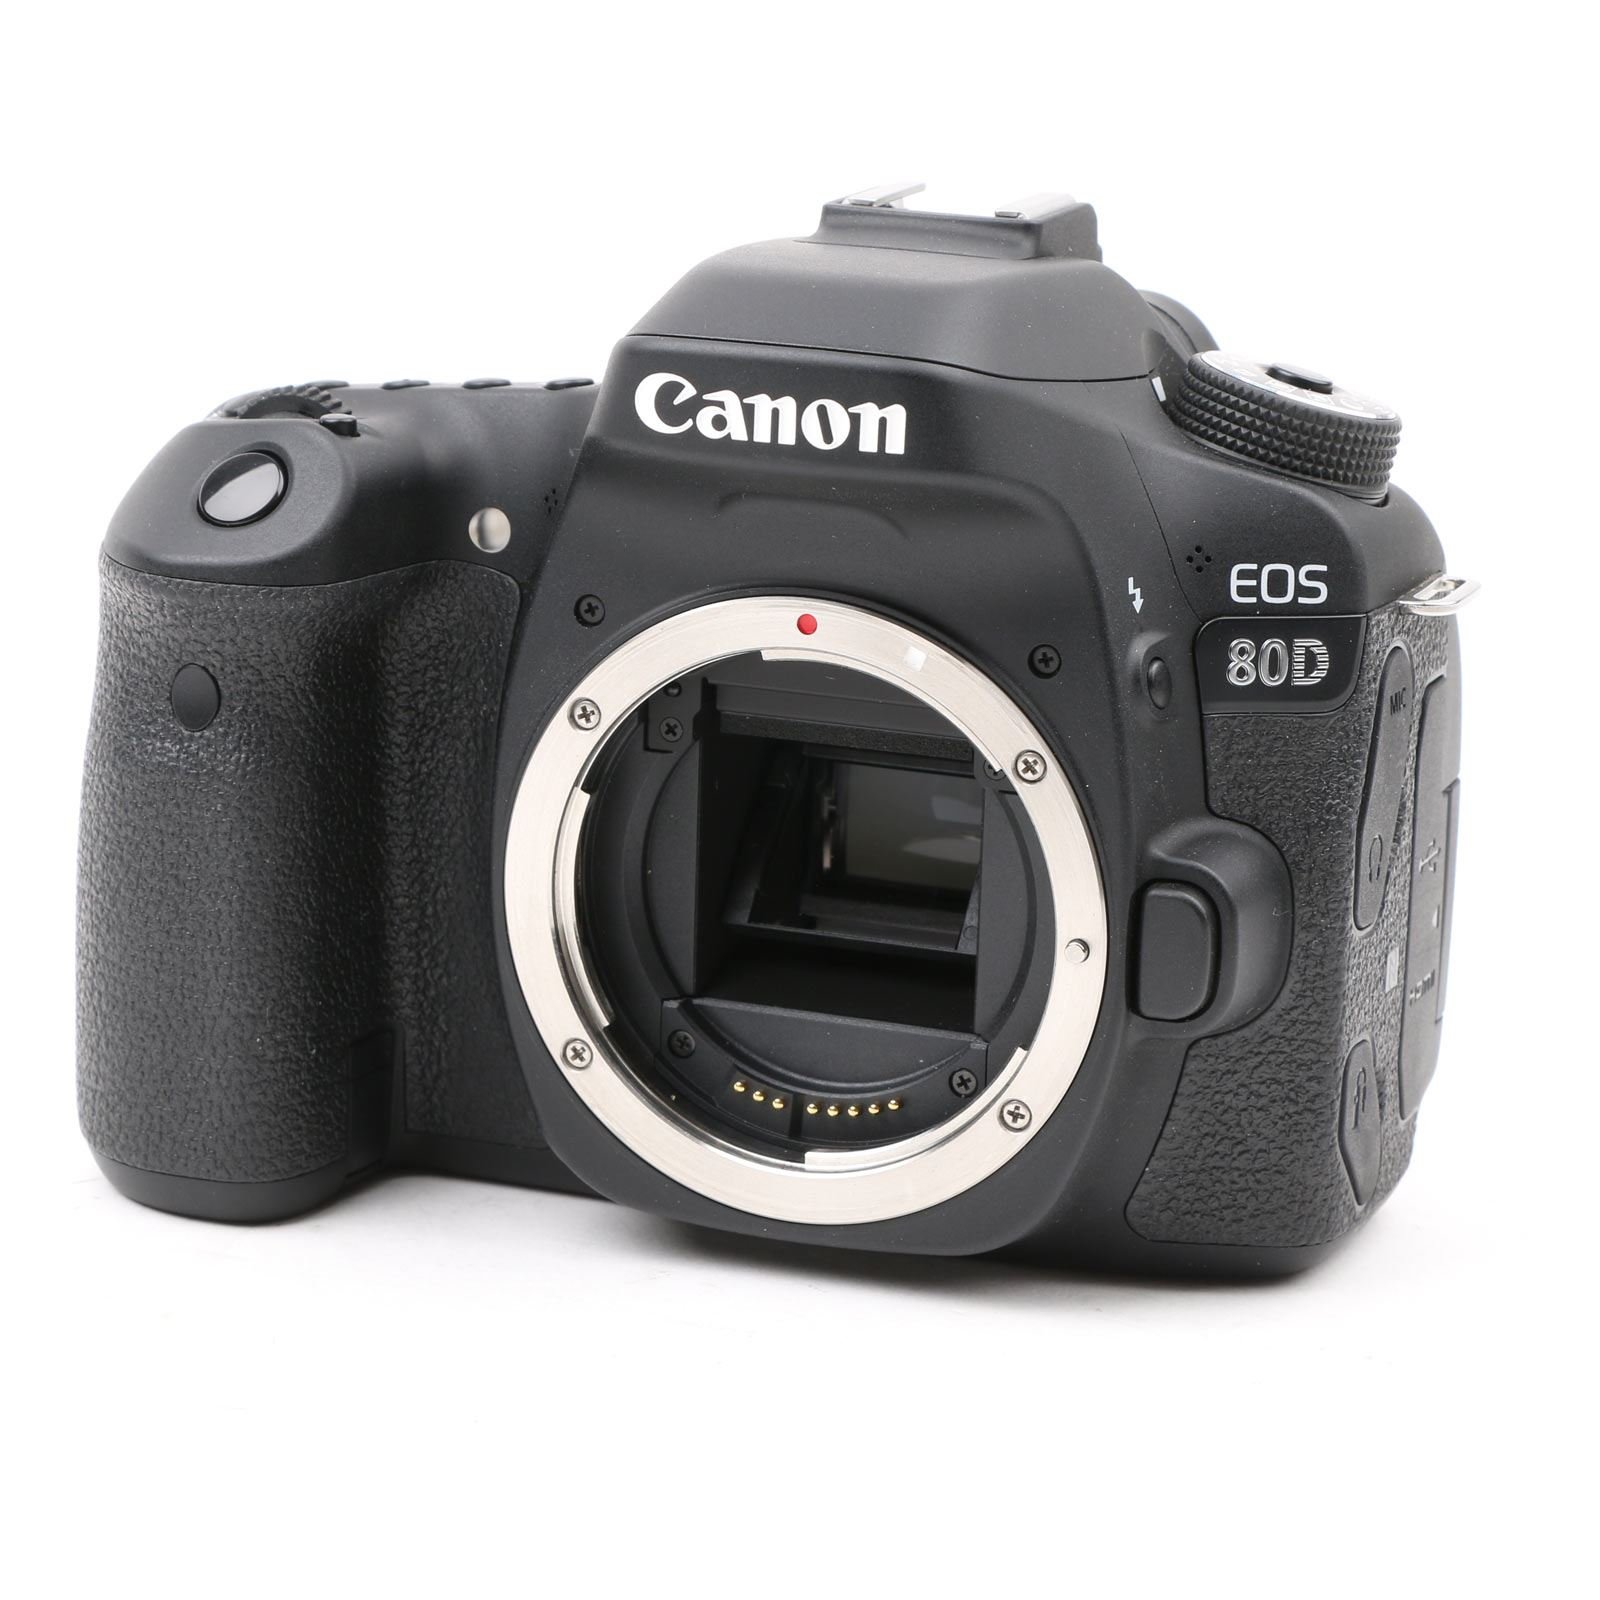 Image of Used Canon EOS 80D Digital SLR Camera Body